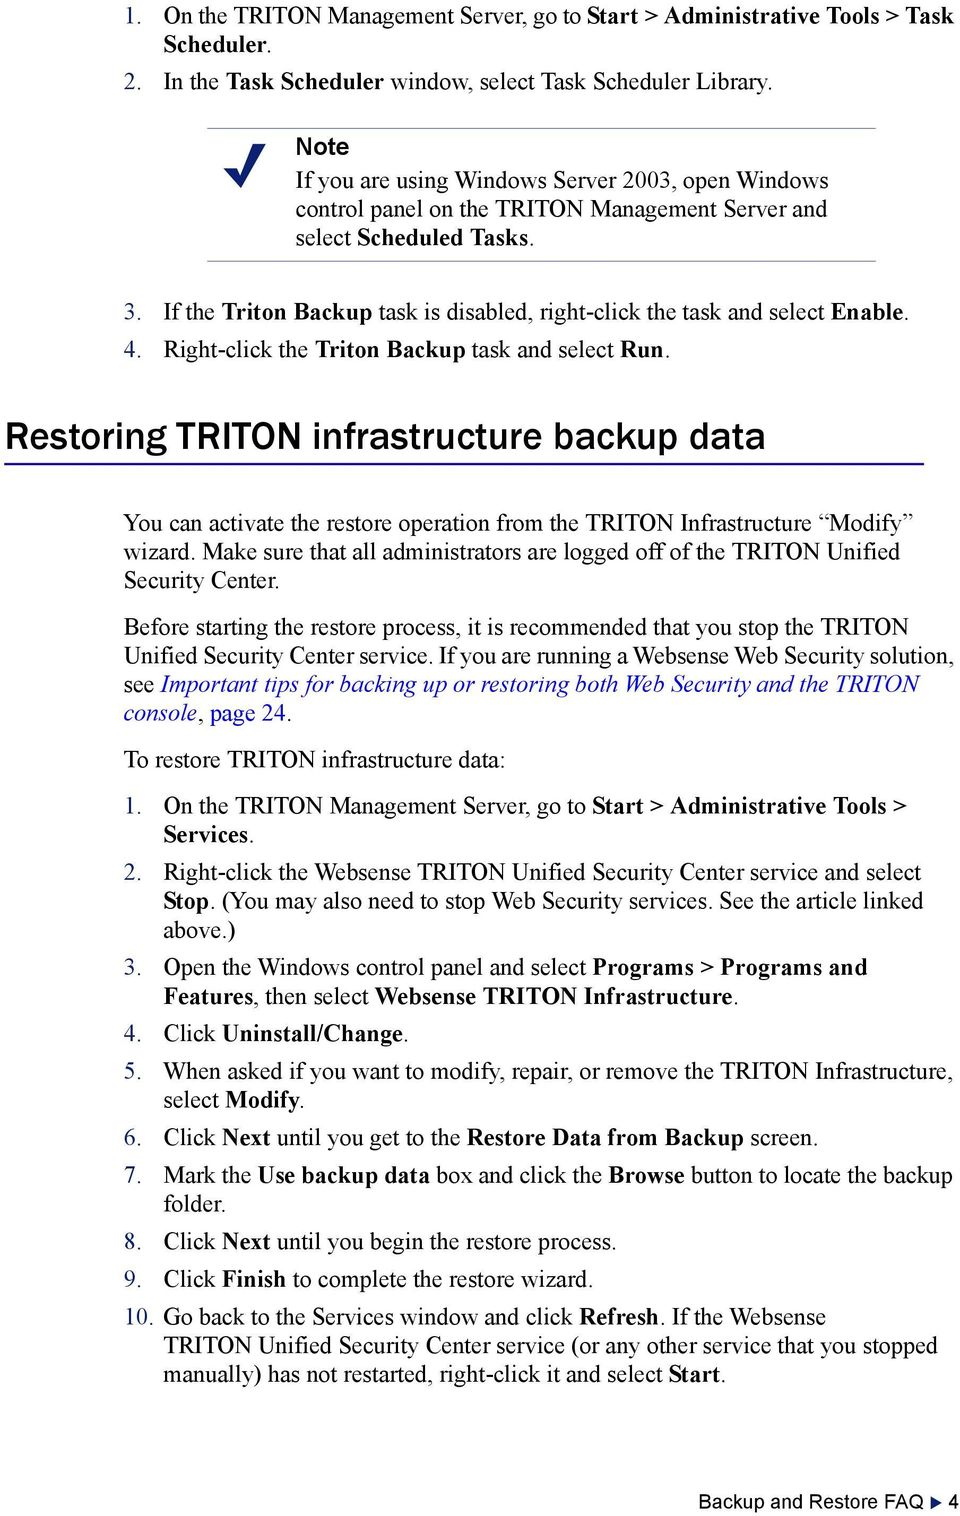 If the Triton Backup task is disabled, right-click the task and select Enable. 4. Right-click the Triton Backup task and select Run.